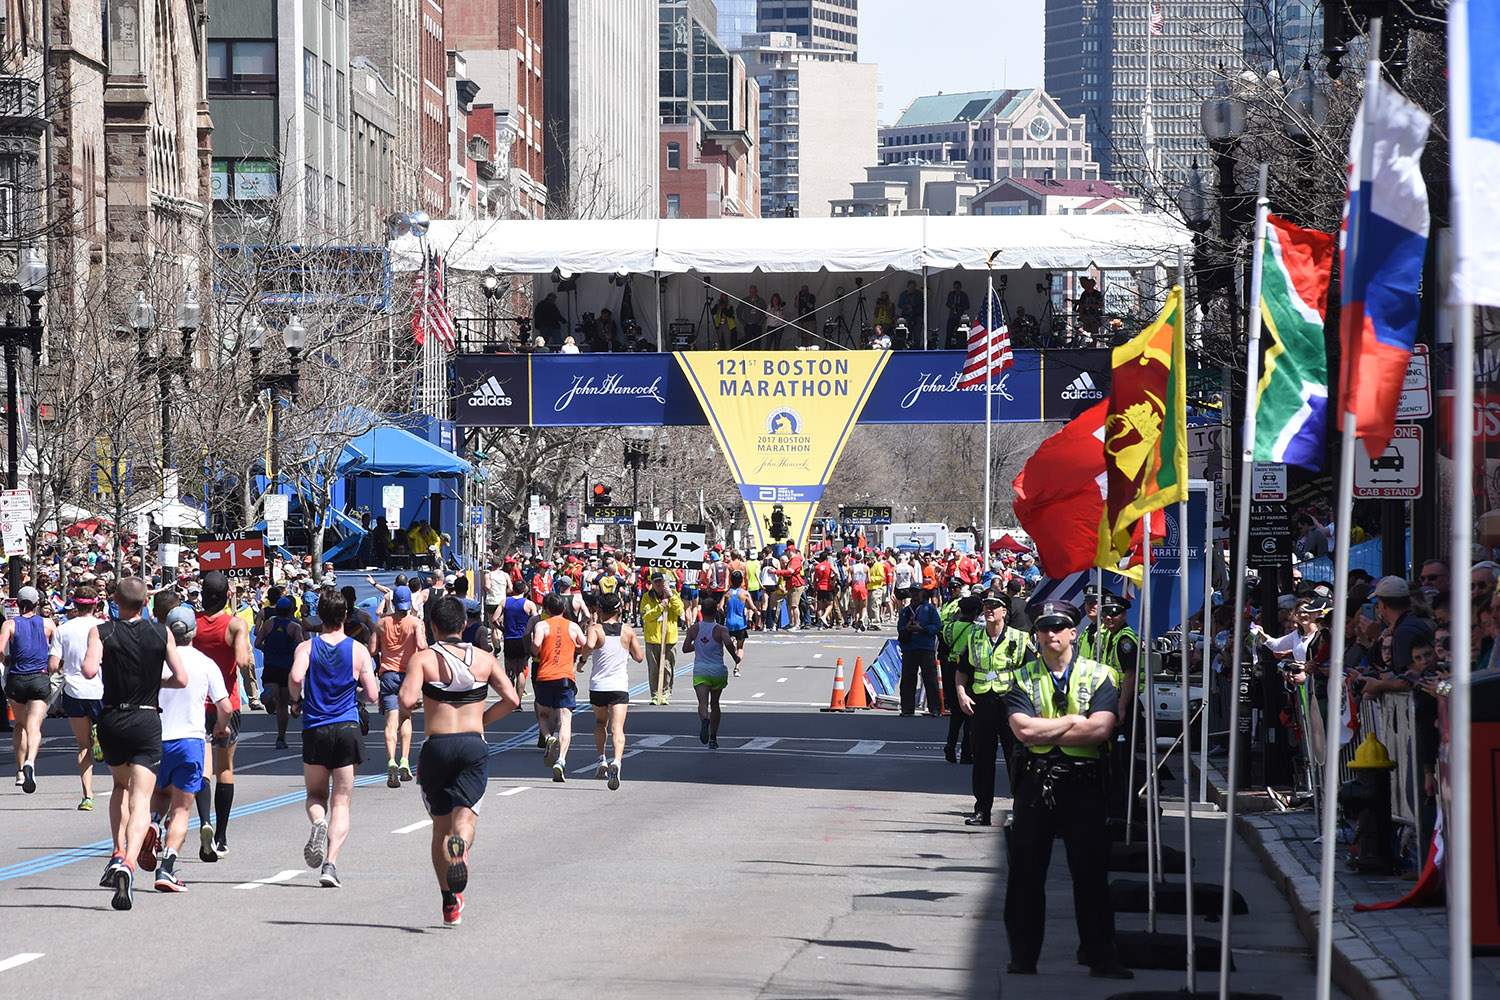 Boston Marathon runners approach the finish line